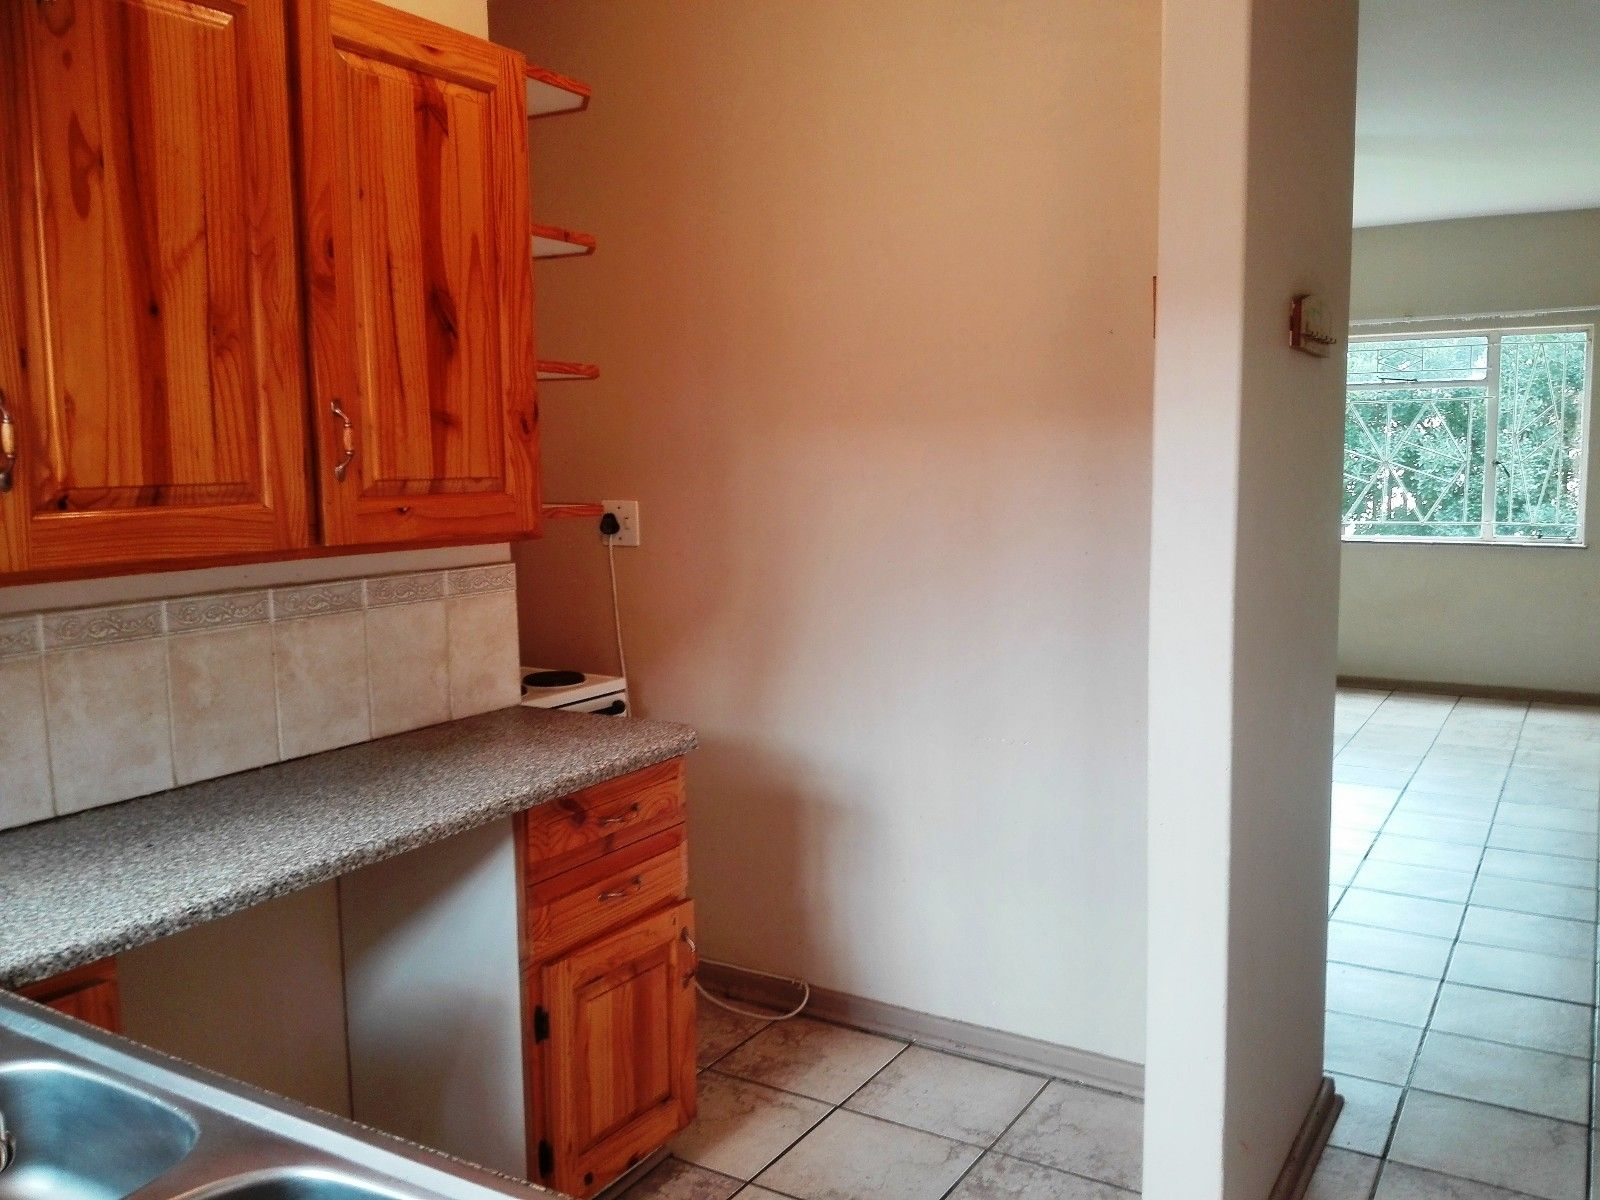 Bult West property for sale. Ref No: 13466336. Picture no 12